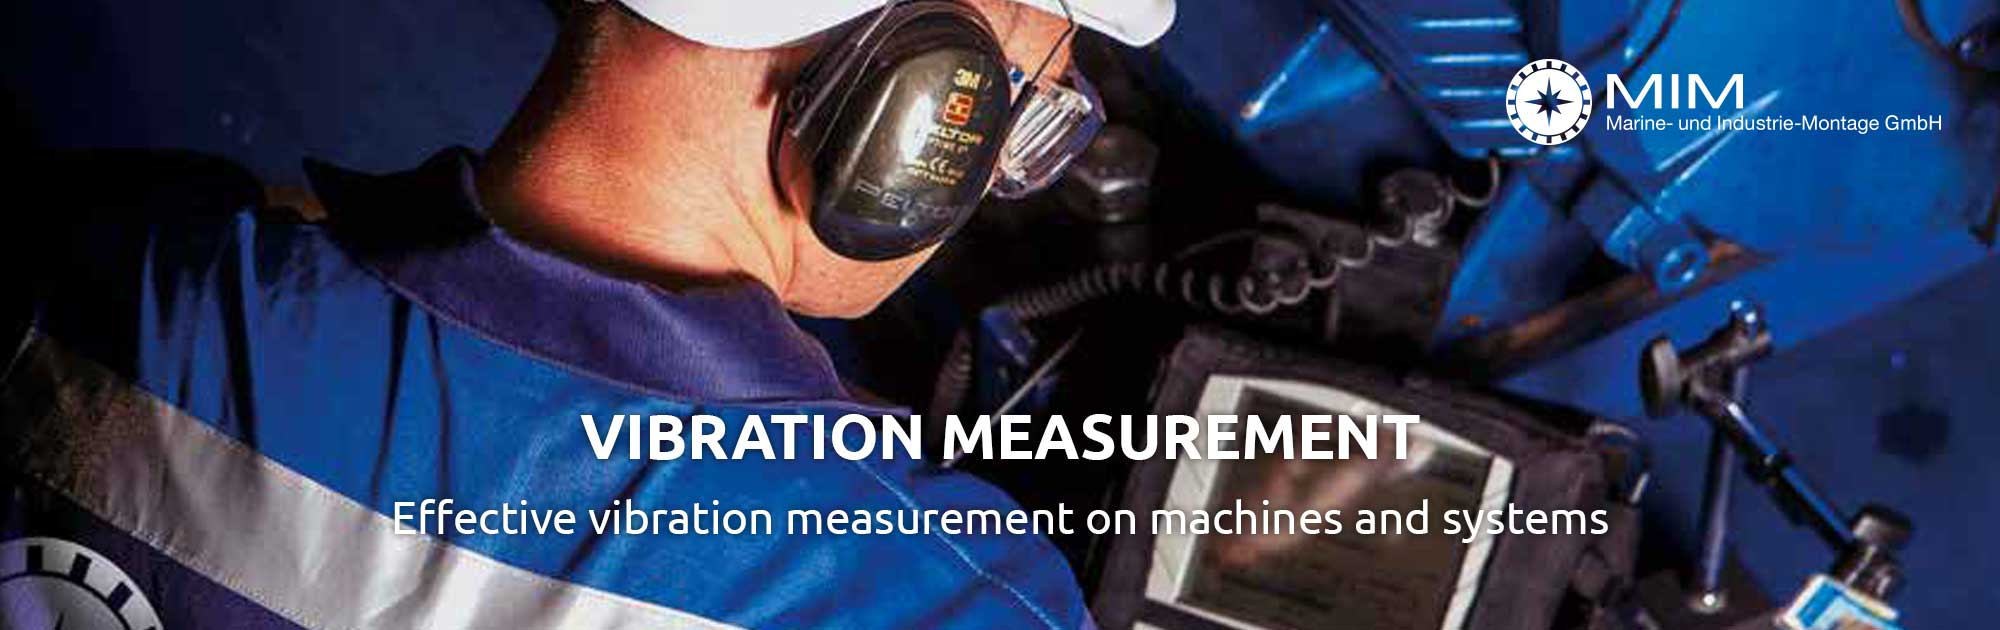 Vibration measurement on machines and systems